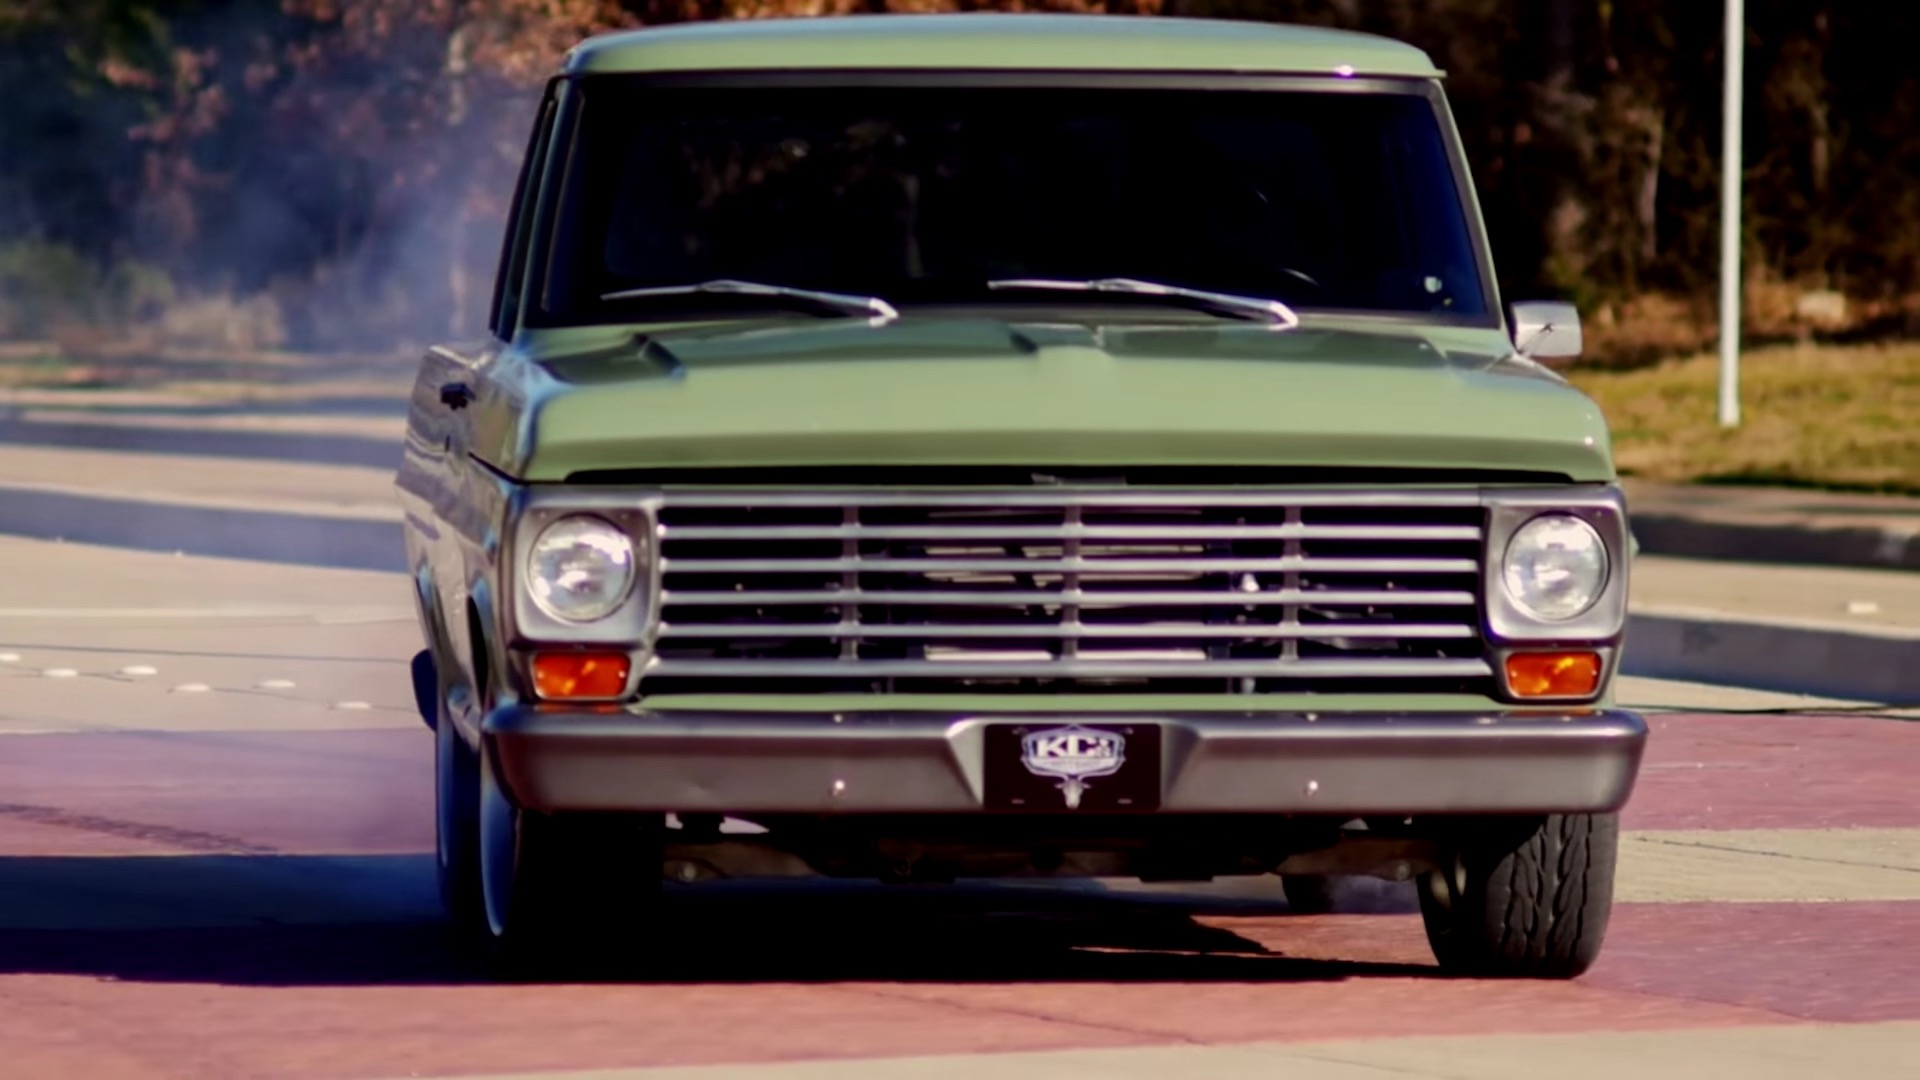 1974 wide body ford f100 classic pickup truckmarch 12 2016in story